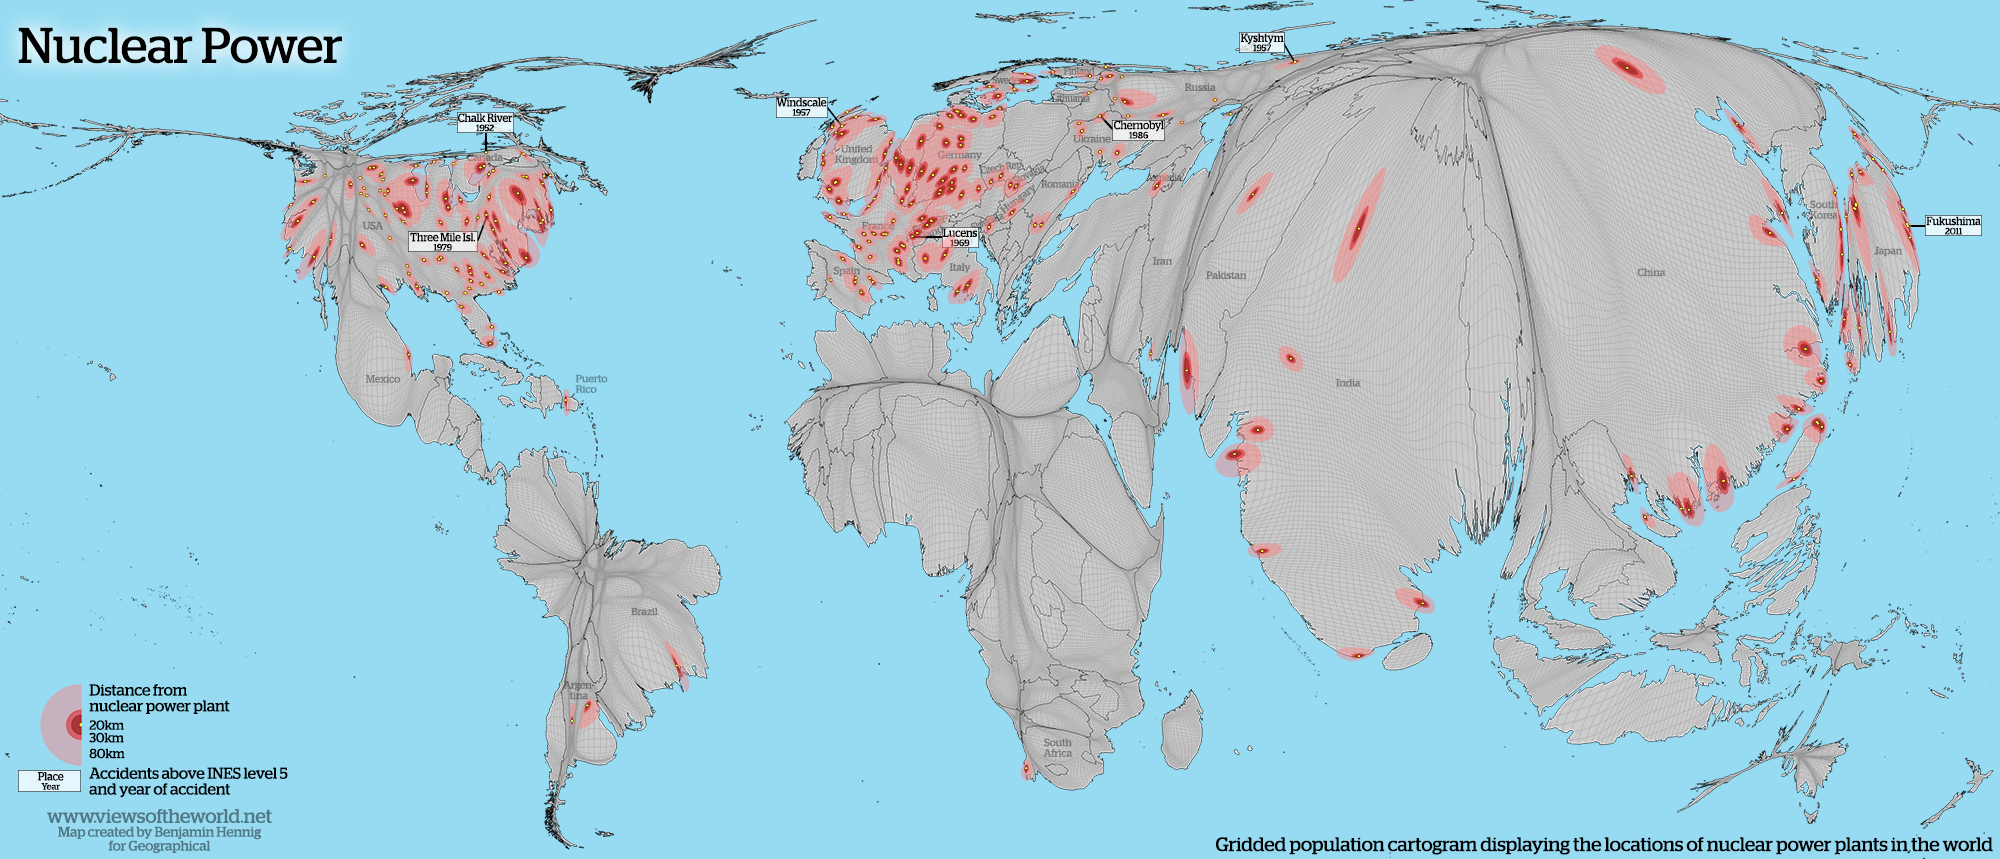 Cartogram of Nuclear Power Plants in the World